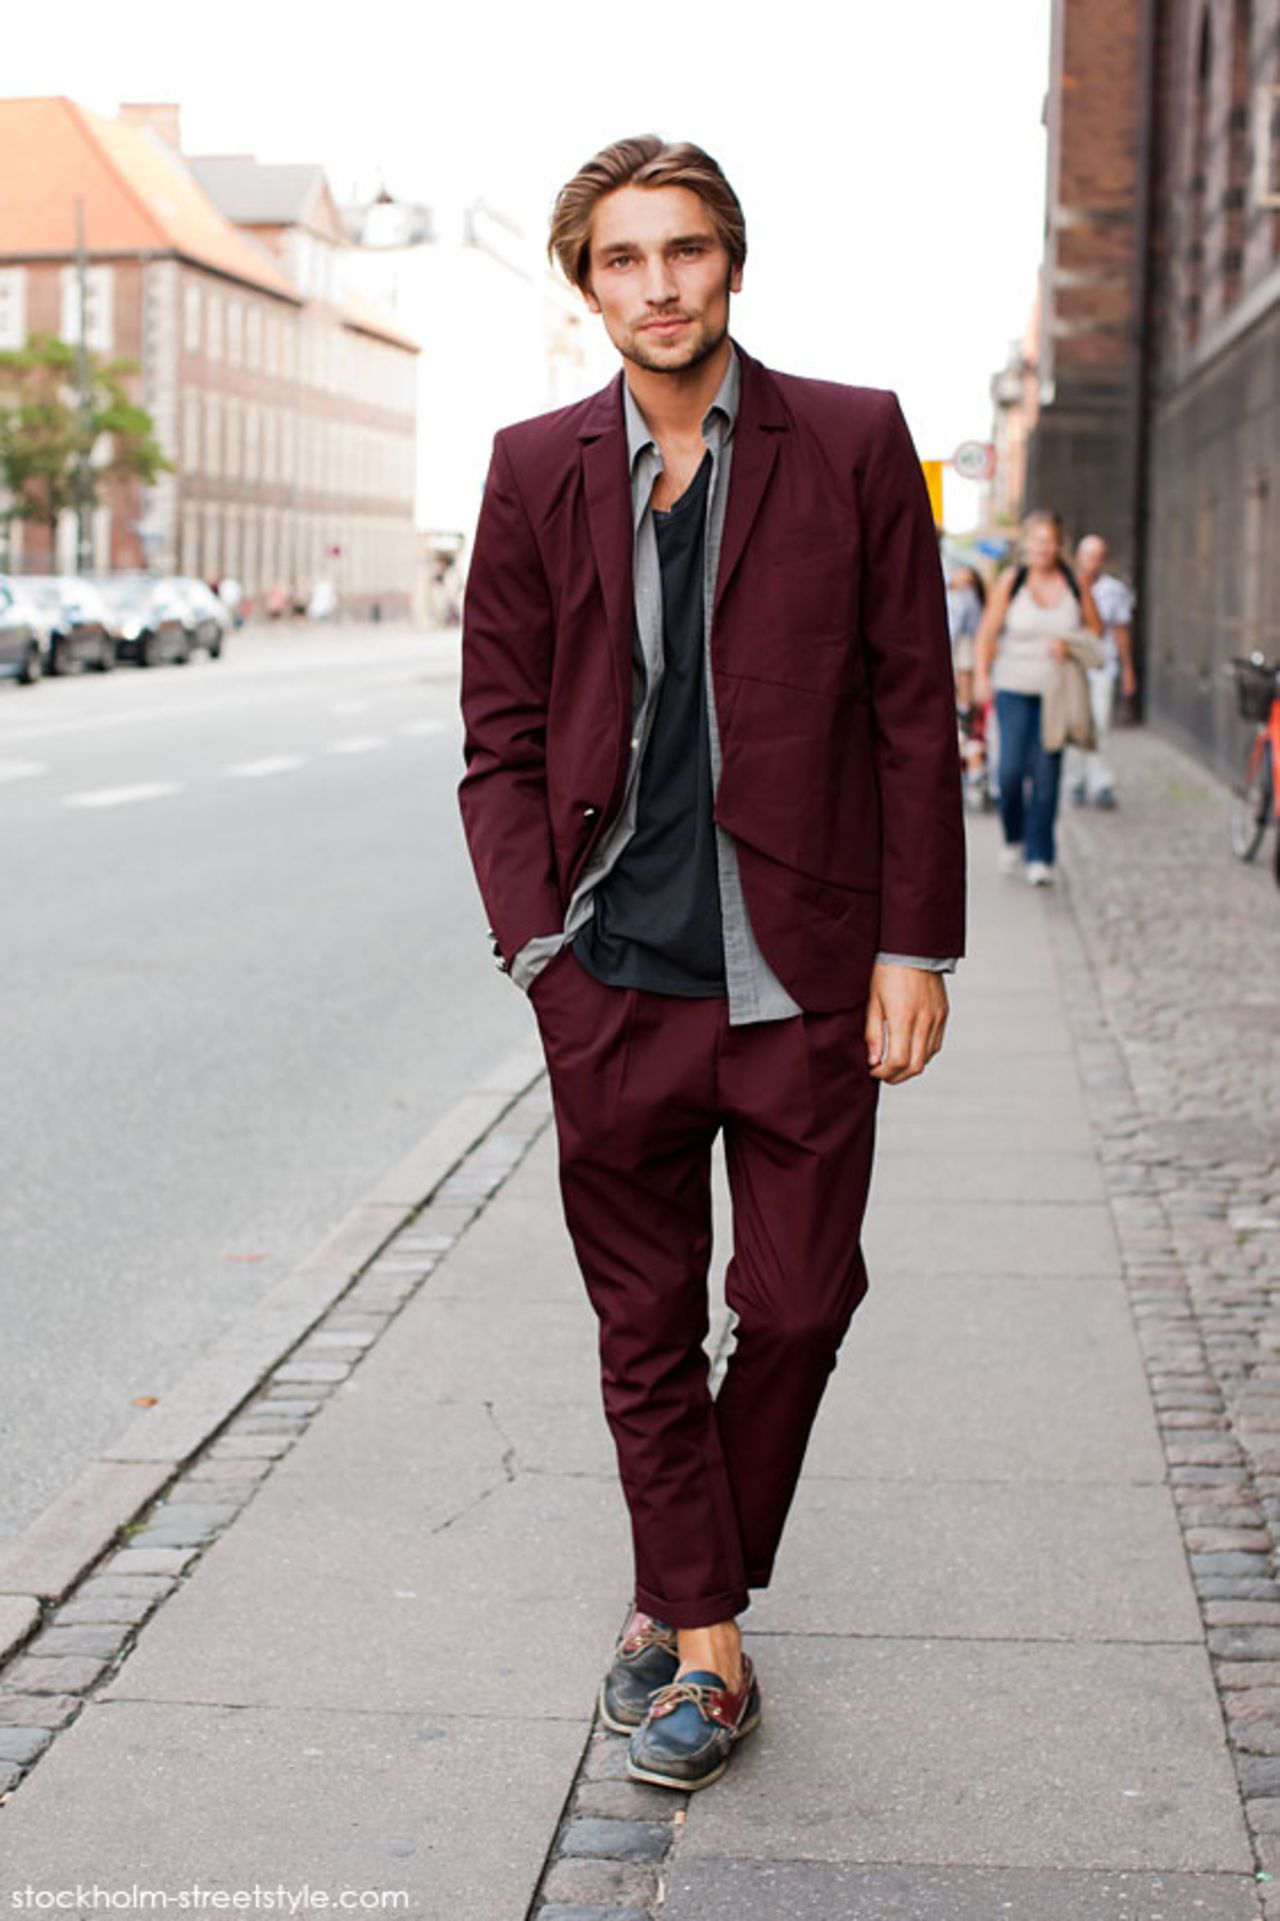 Black t shirt with suit - Men S Burgundy Blazer Grey Long Sleeve Shirt Black Crew Neck T Shirt Burgundy Chinos